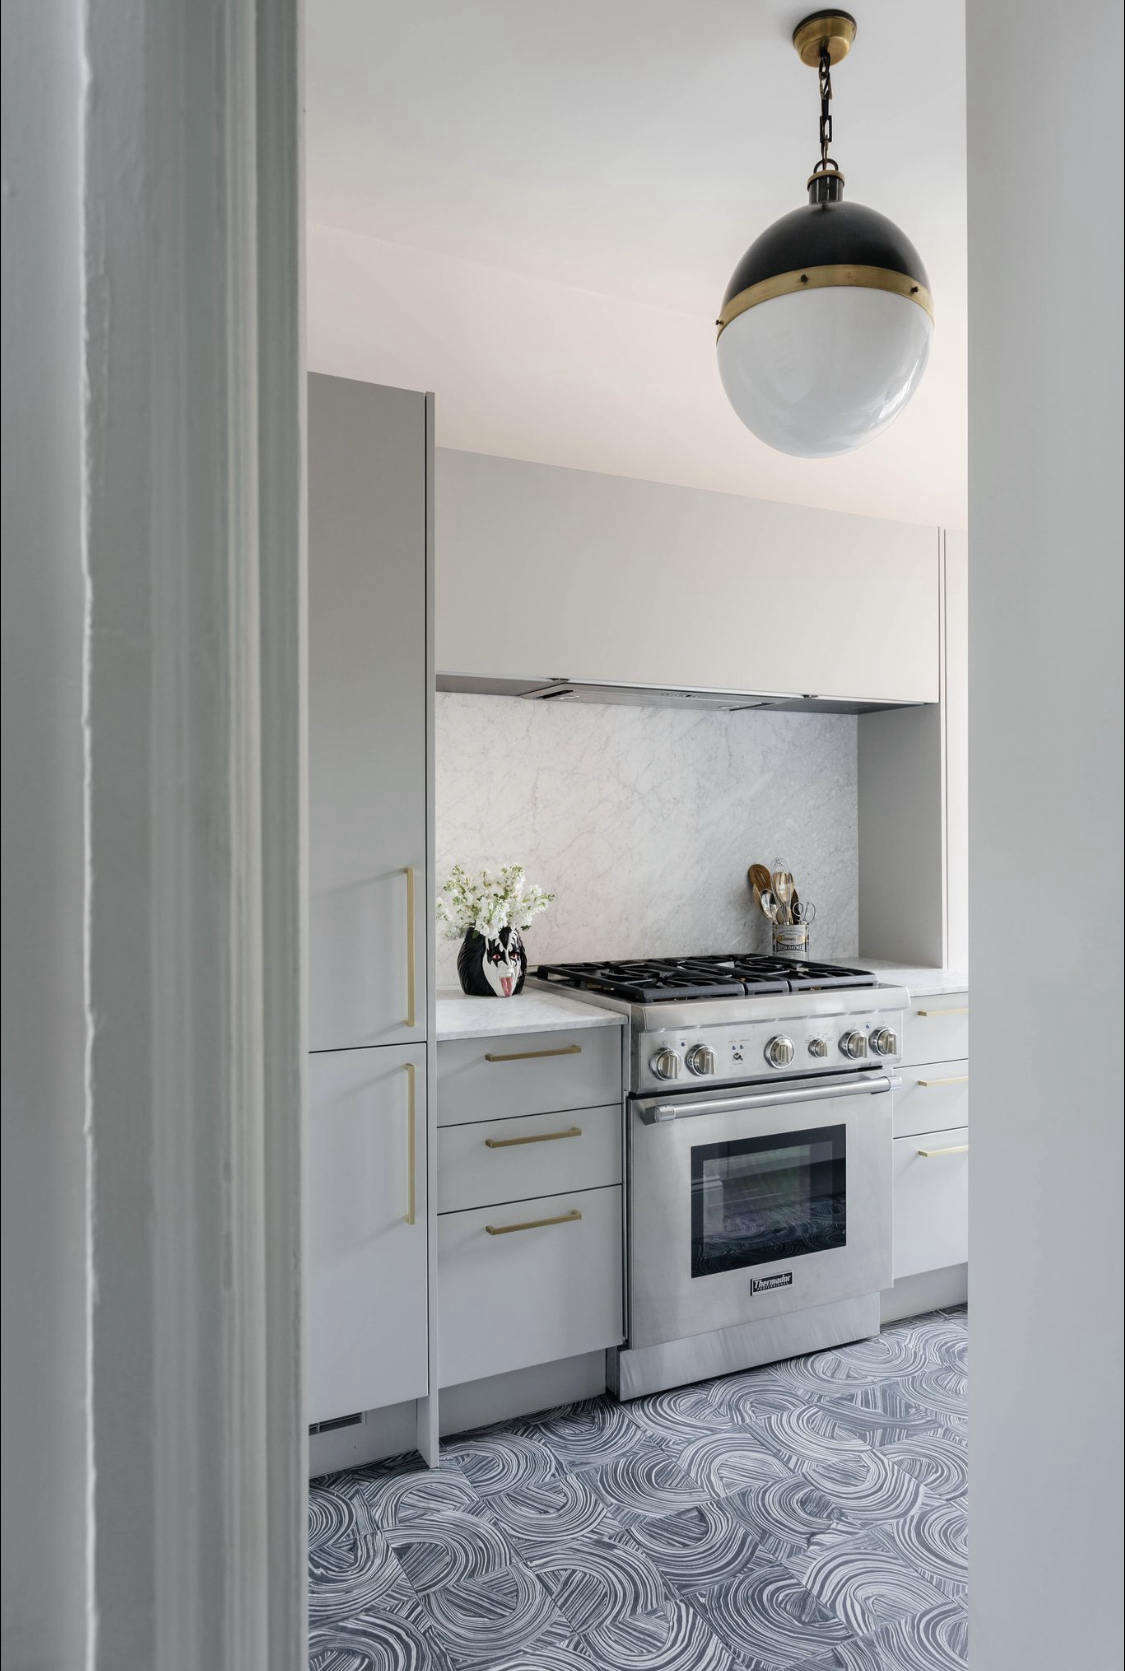 The client is an avid cook and requested a gut renovation for the kitchen. It turned out to be Delia&#8